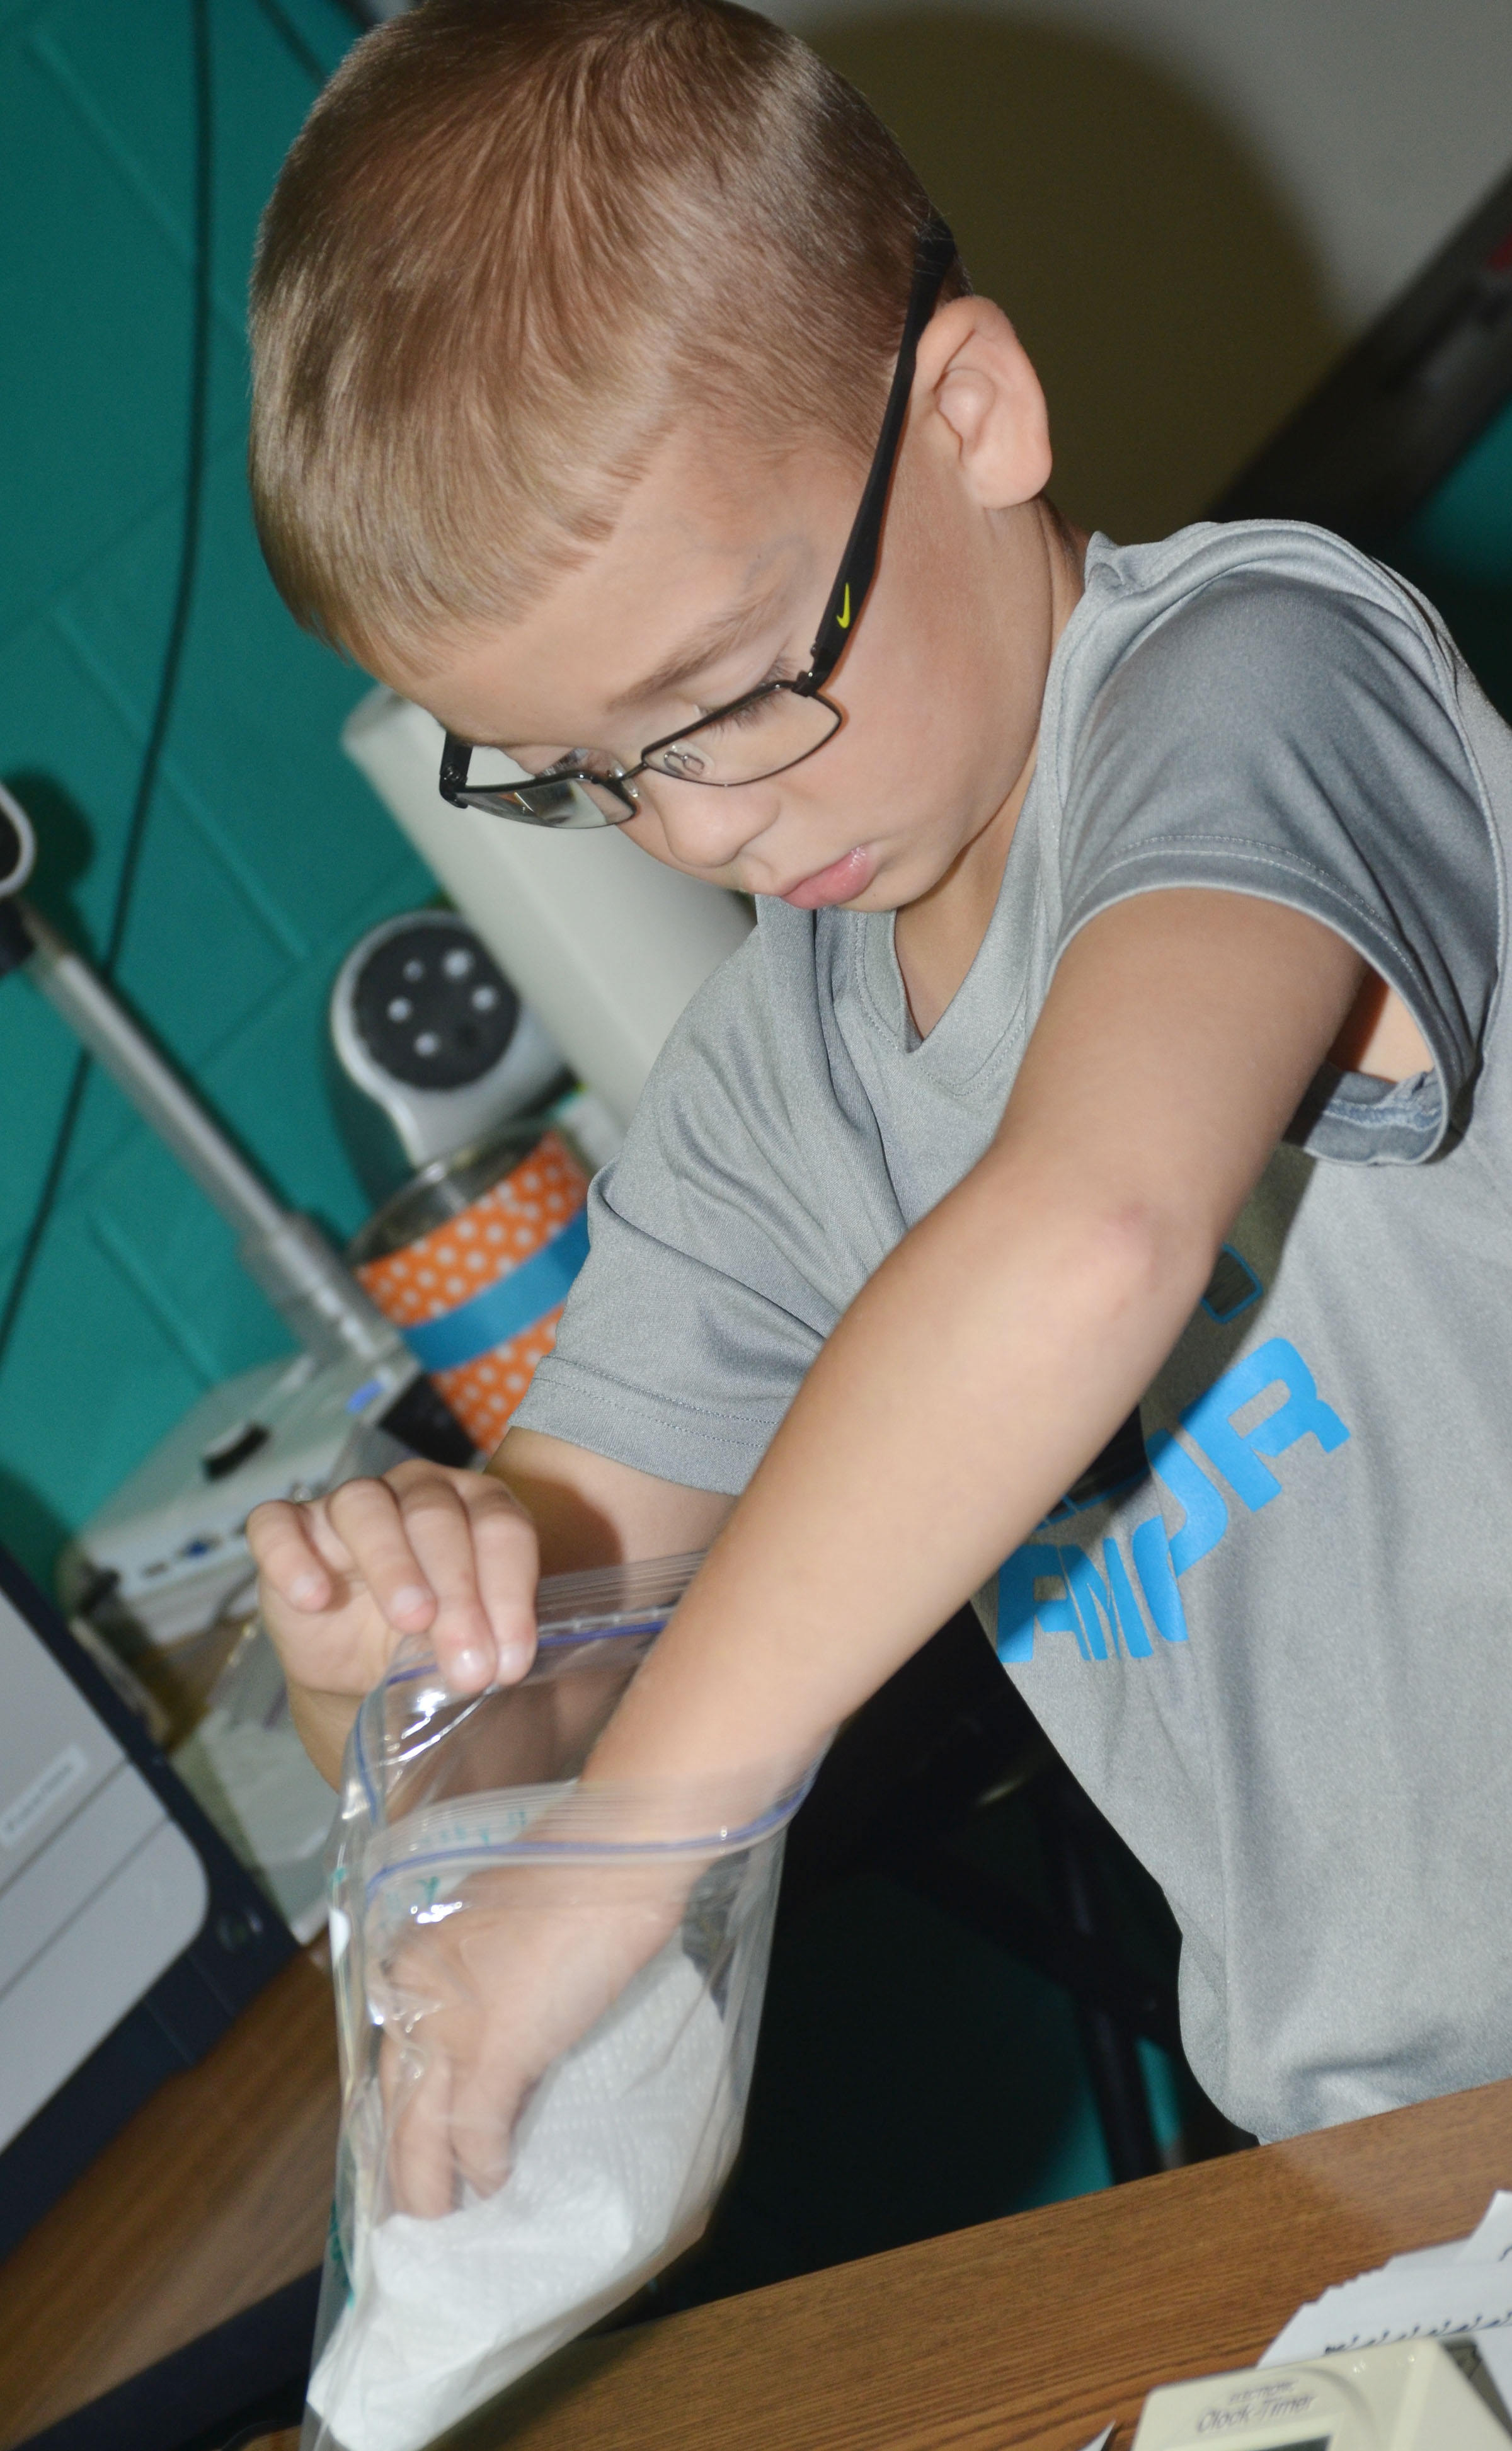 CES third-grader Cameron Estes adds his group's seed to a bag so it can grow.